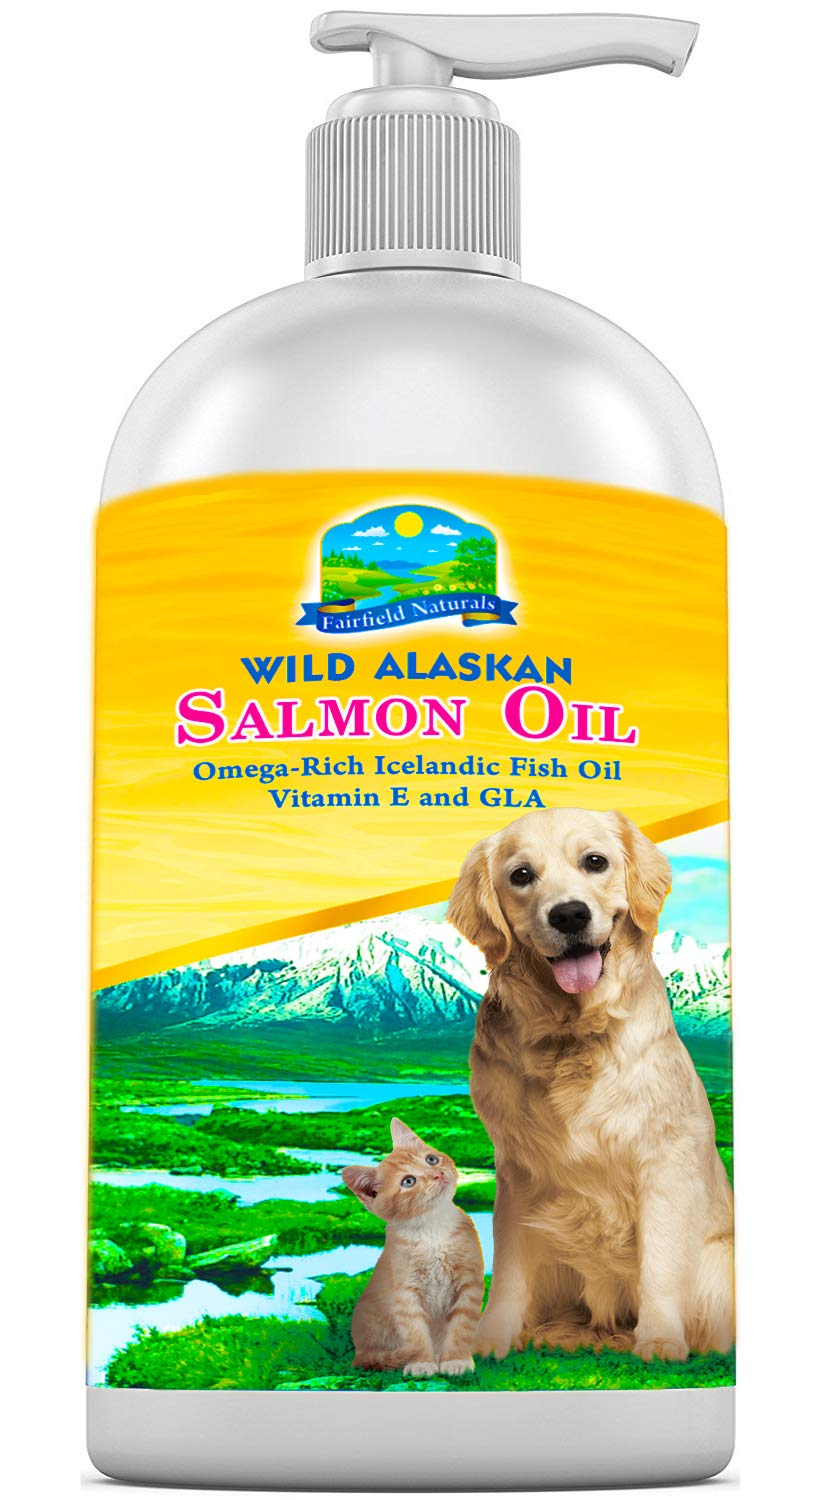 Fairfield Naturals Omega 3 Pet Fish Oil for Dogs & Cats - Organic Wild Alaskan Salmon Fish Oil | Supports Joint Function, Immune & Heart Health - All Natural DHA & EPA Fatty Acids for Skin & Coat 8oz by Fairfield Naturals